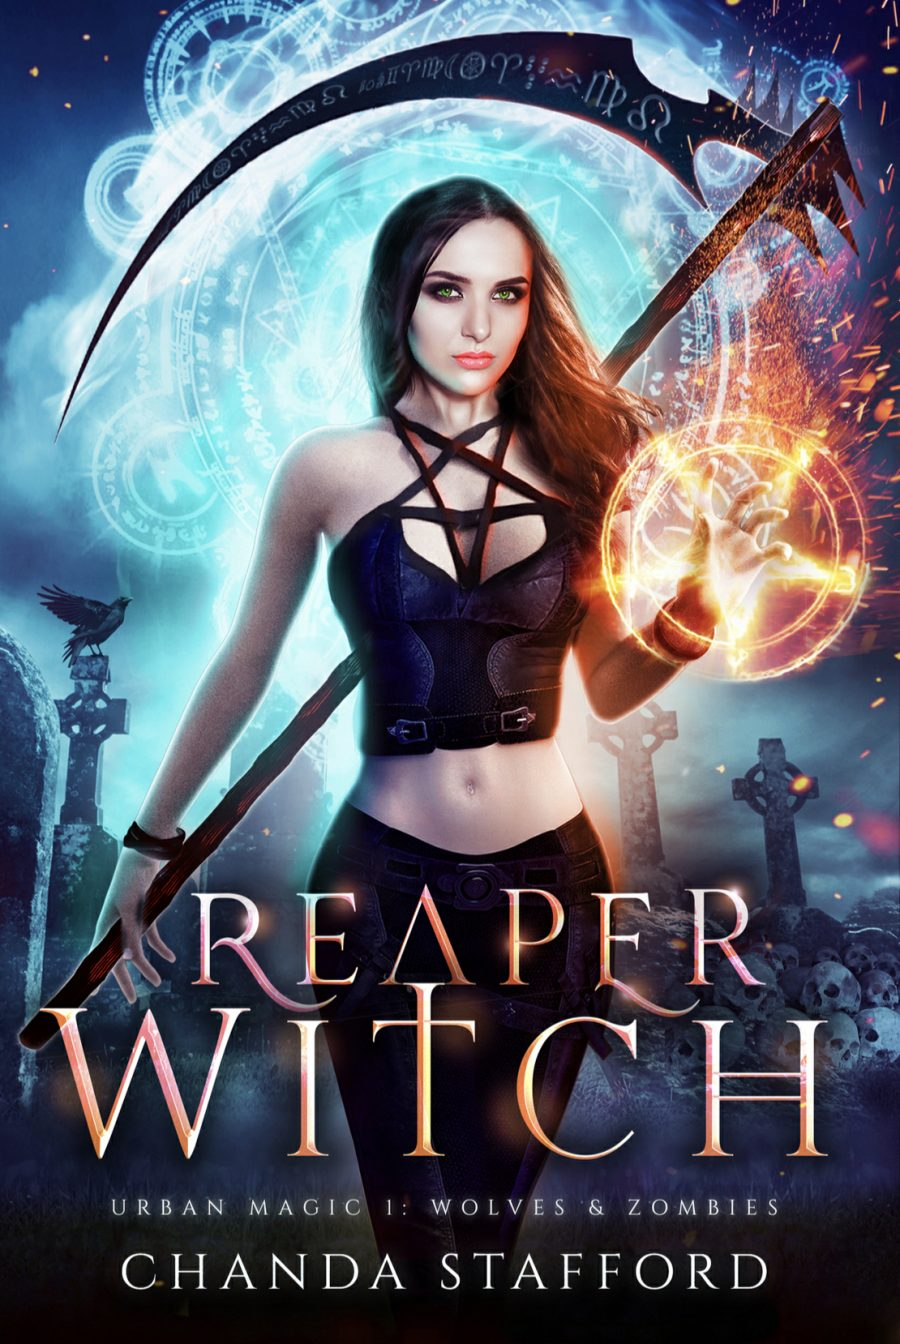 Reaper Witch: Wolves & Zombies by Chandra Stafford - A Book Review #BookReview #UrbanFantasy #Werewolves #Zombies #Magic #Demons #4Star #KindleUnlimited #KU #Action